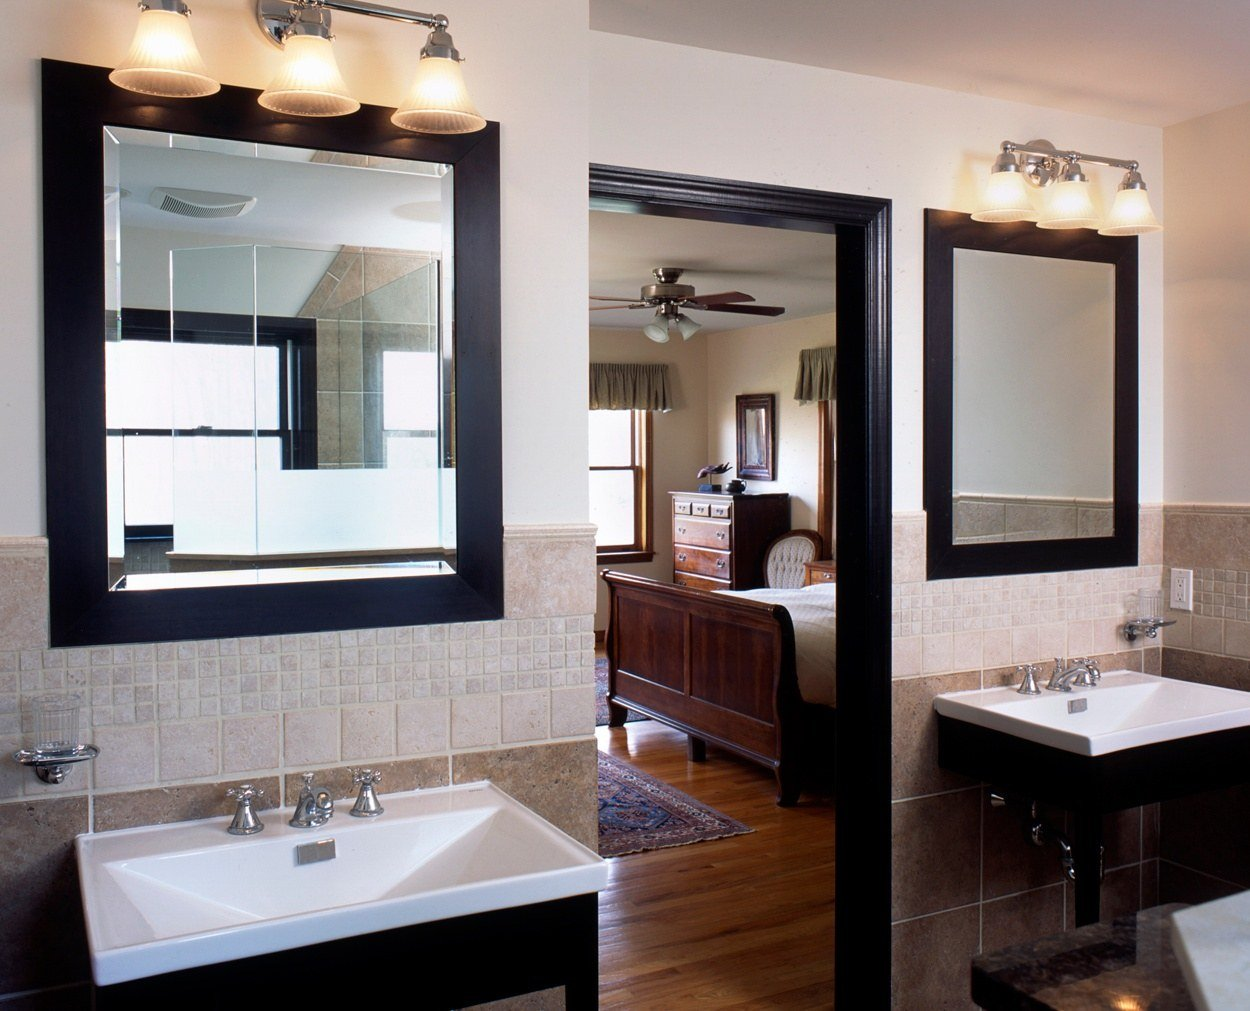 Dark framed mirrors and matching vanities in remodeled master bedroom suite.